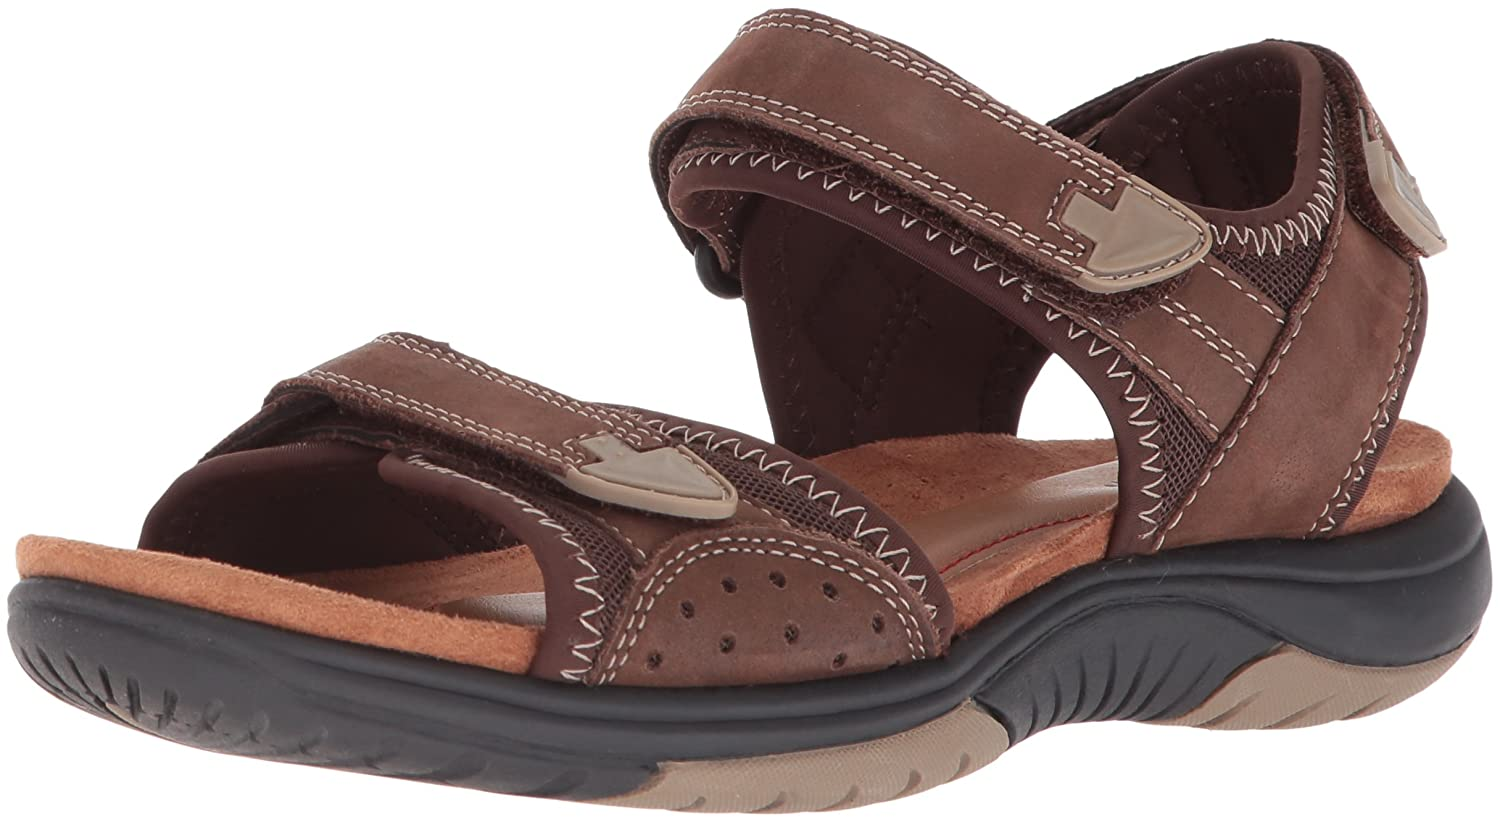 Rockport Women's B073ZTRQNP Franklin Three Strap Sport Sandal B073ZTRQNP Women's 11 W US|Brown 691923